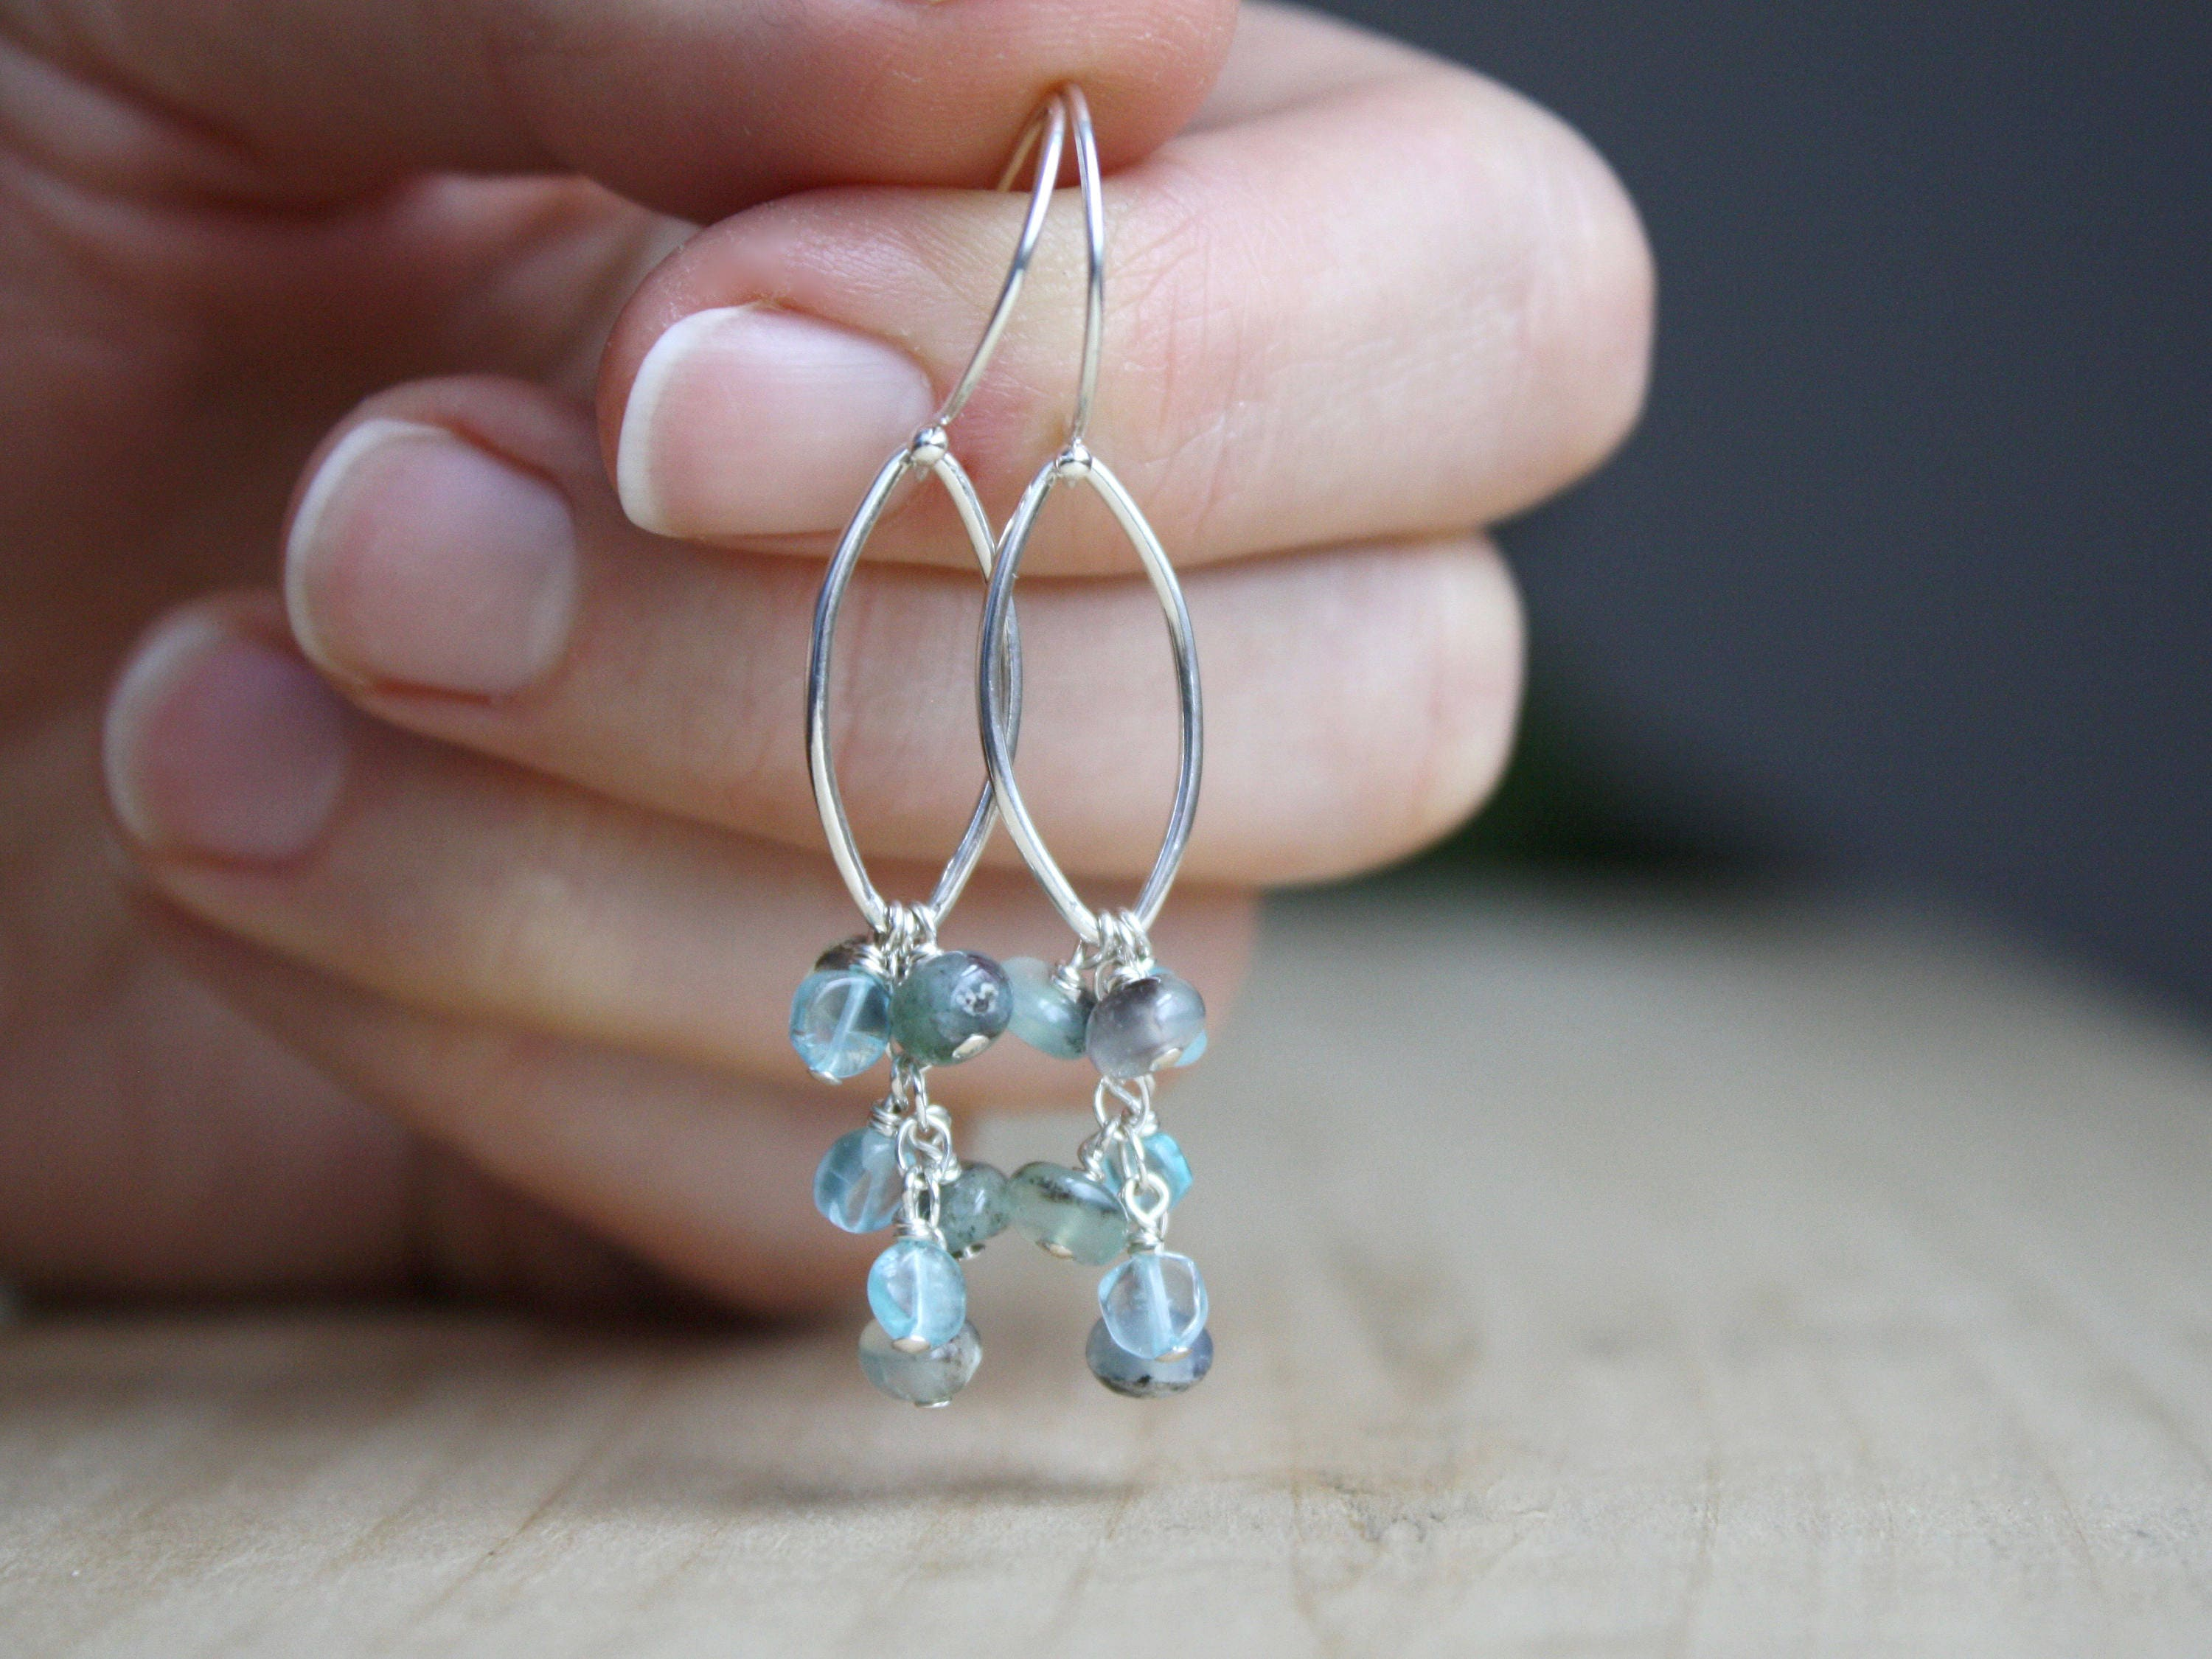 earrings green kaleidoscopic apatite pin stormy hue facets is enlivened by s gray muted